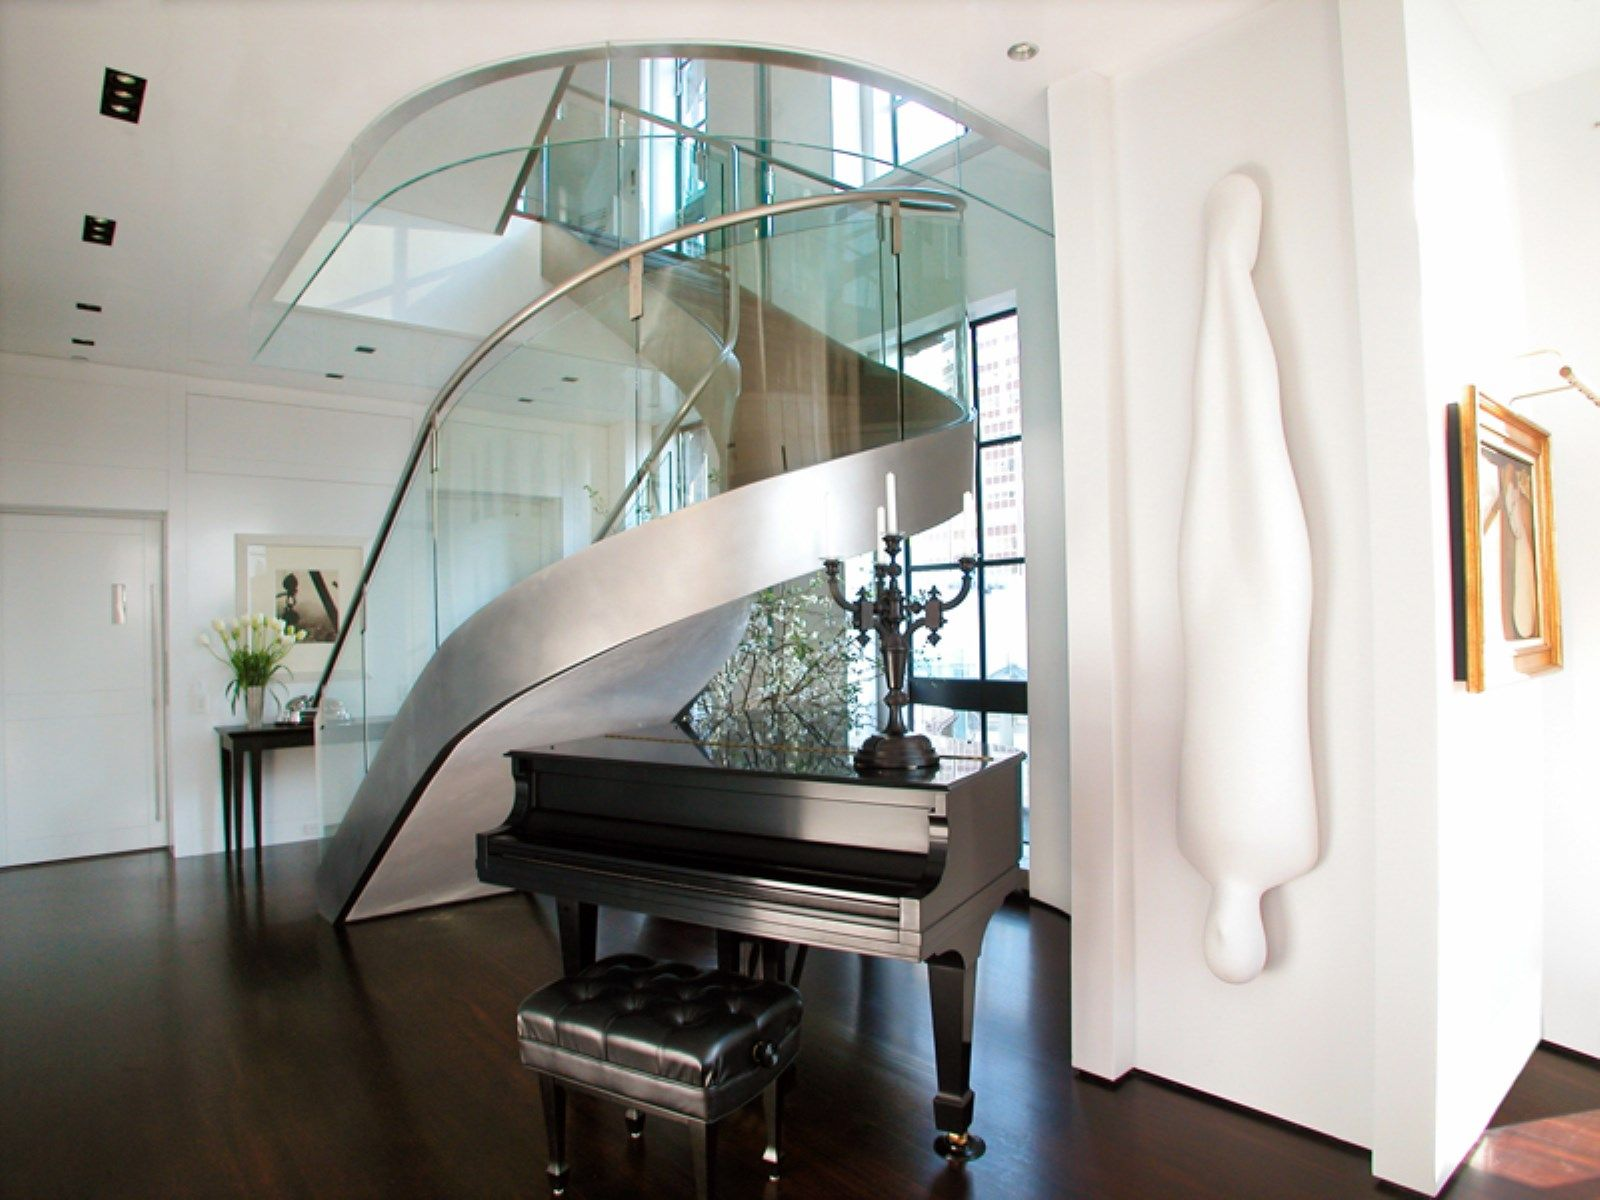 Exquisite Staircase Design exquisite wrought iron railing straight staircase design for villa Find This Pin And More On Interior Design